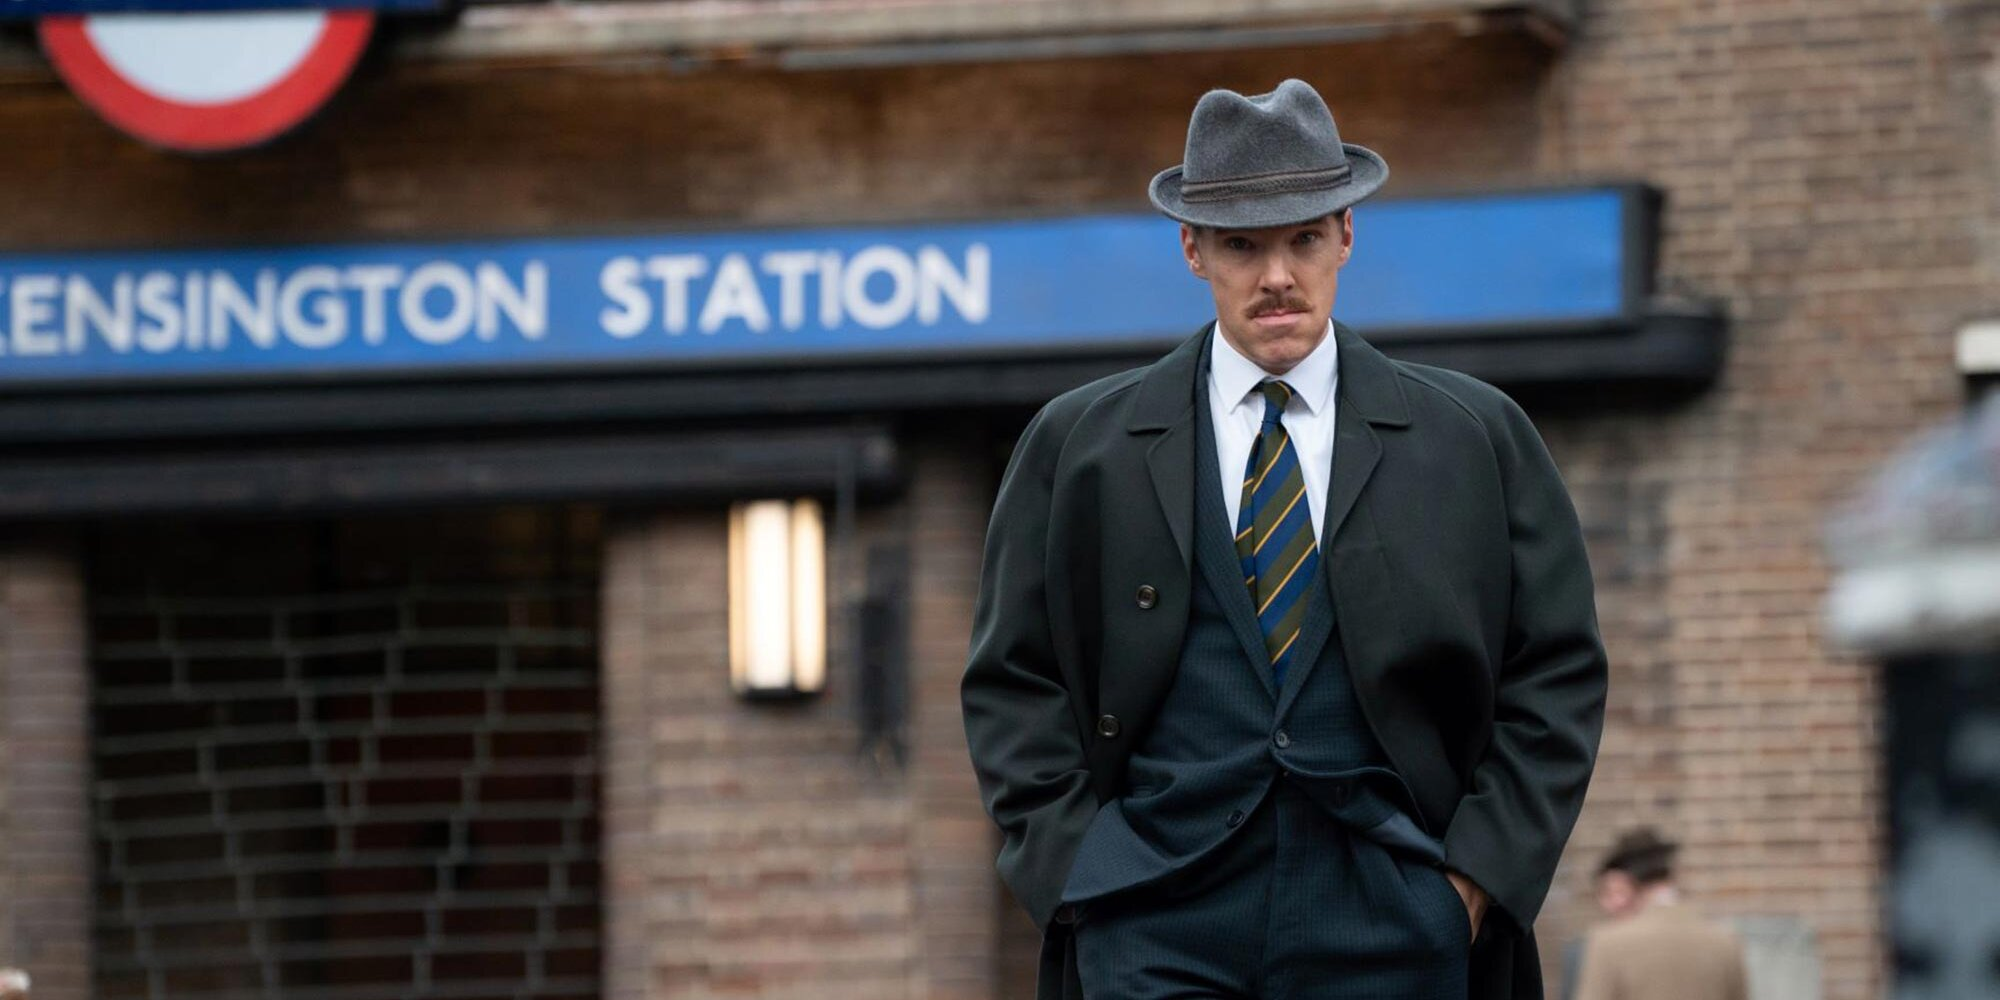 Benedict Cumberbatch is a Cold War spy in 'The Courier' trailer